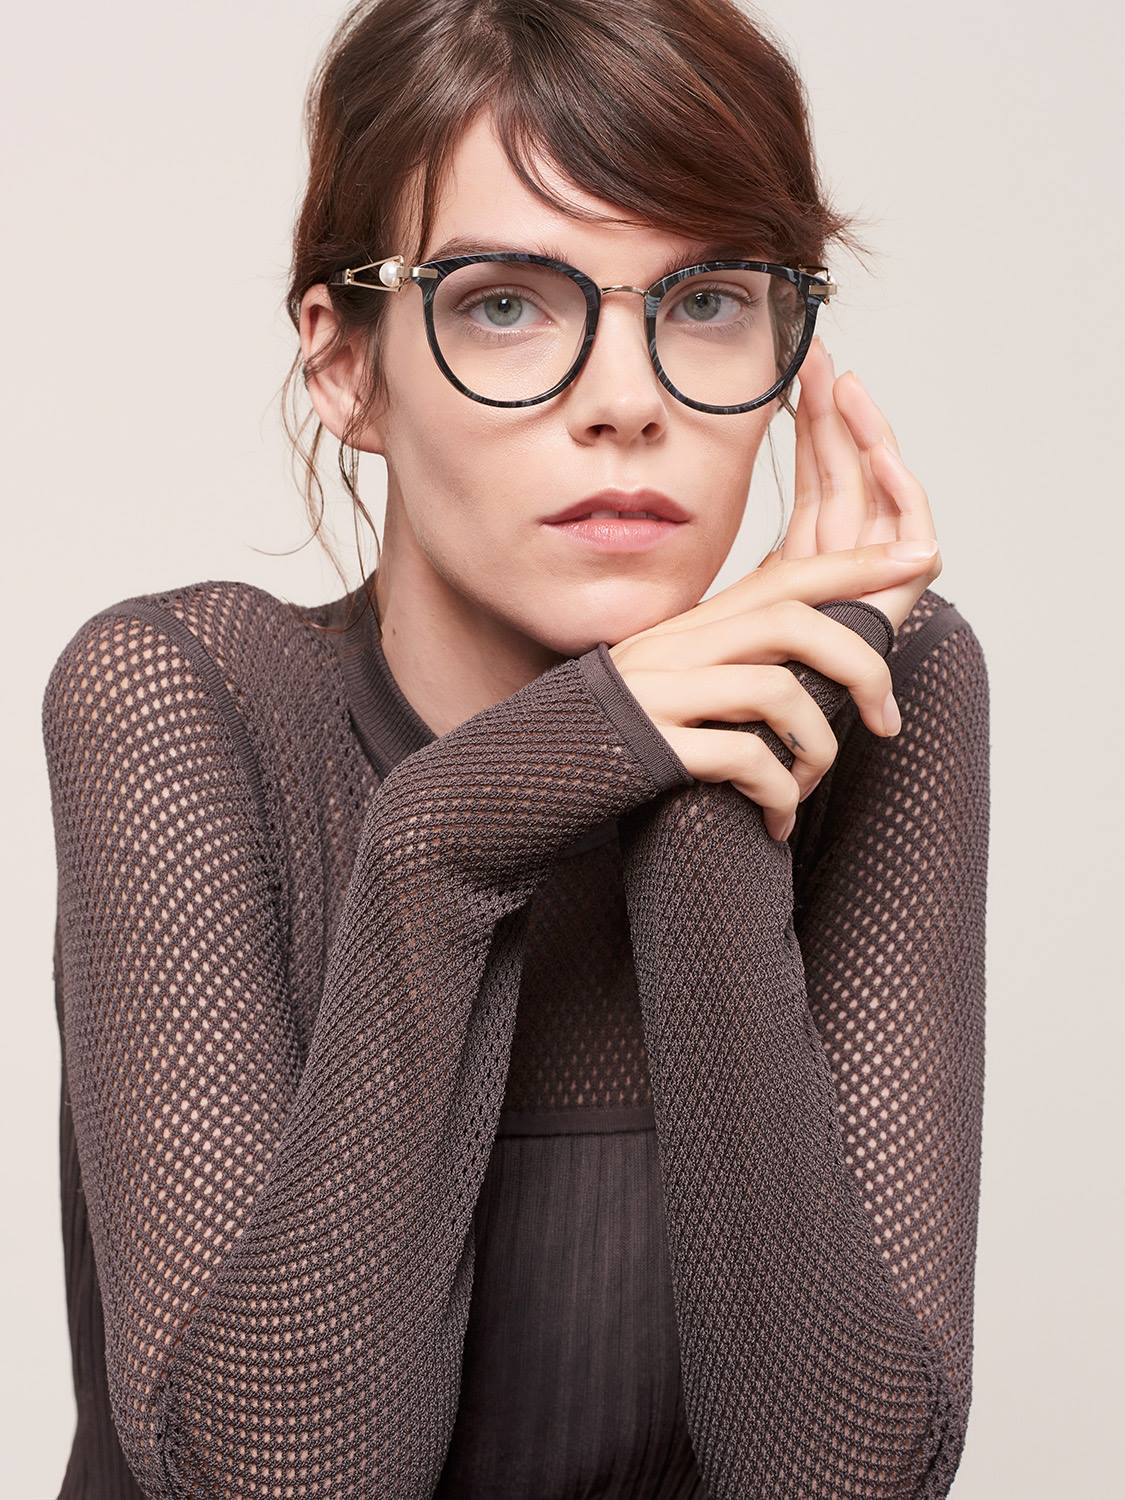 Jason Wu Fall Winter 2017 Eyewear Collection by Jason Ryang